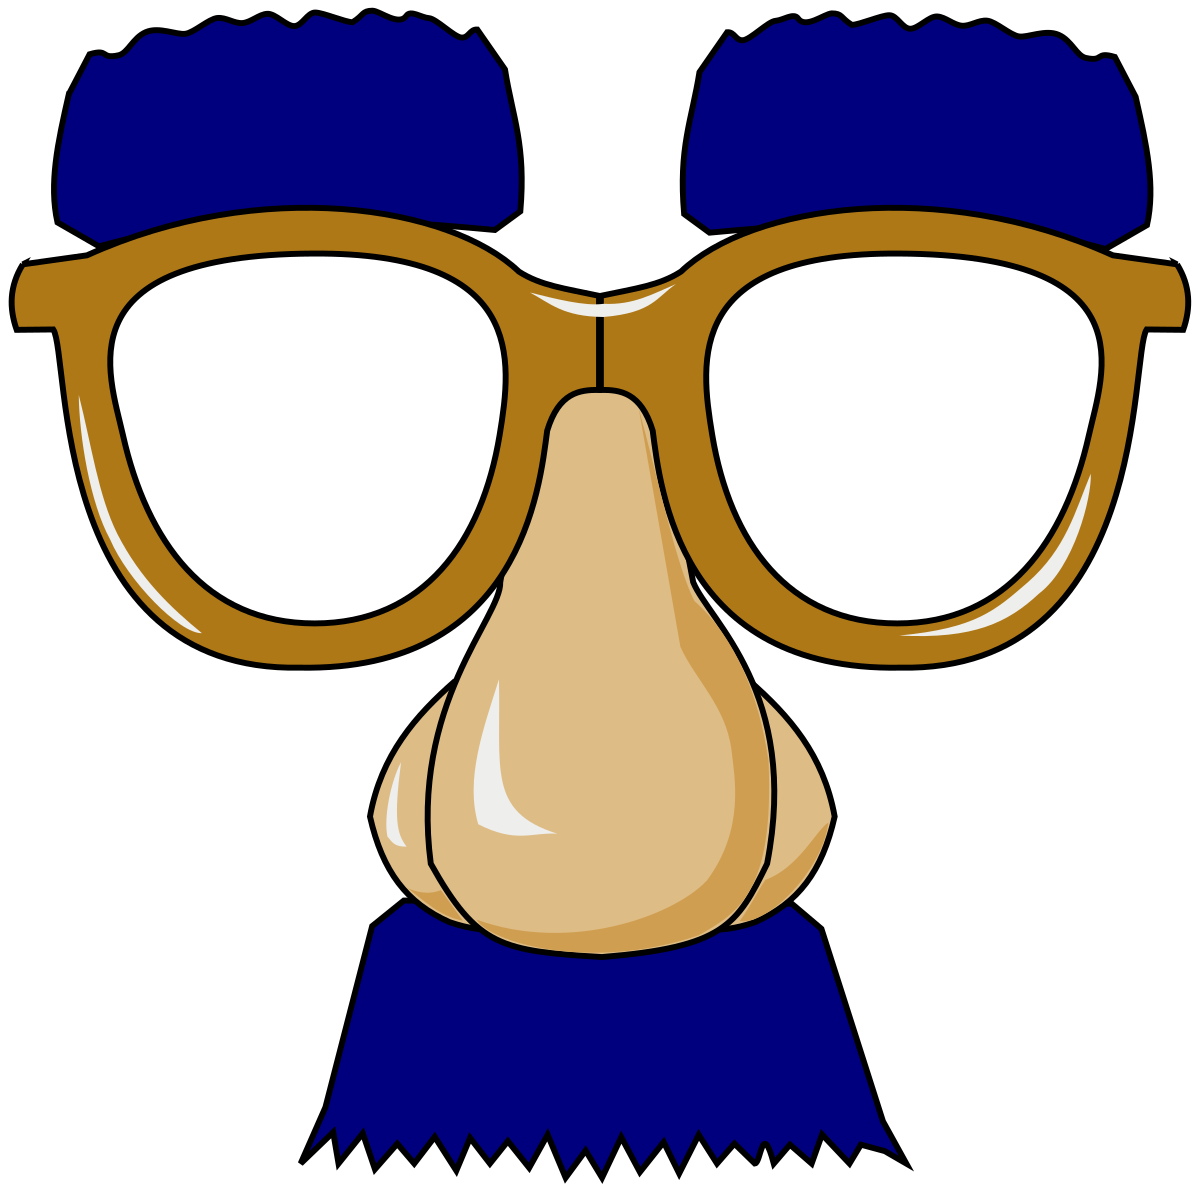 Groucho glasses wikipedia . Eyebrow clipart glass mustache nose